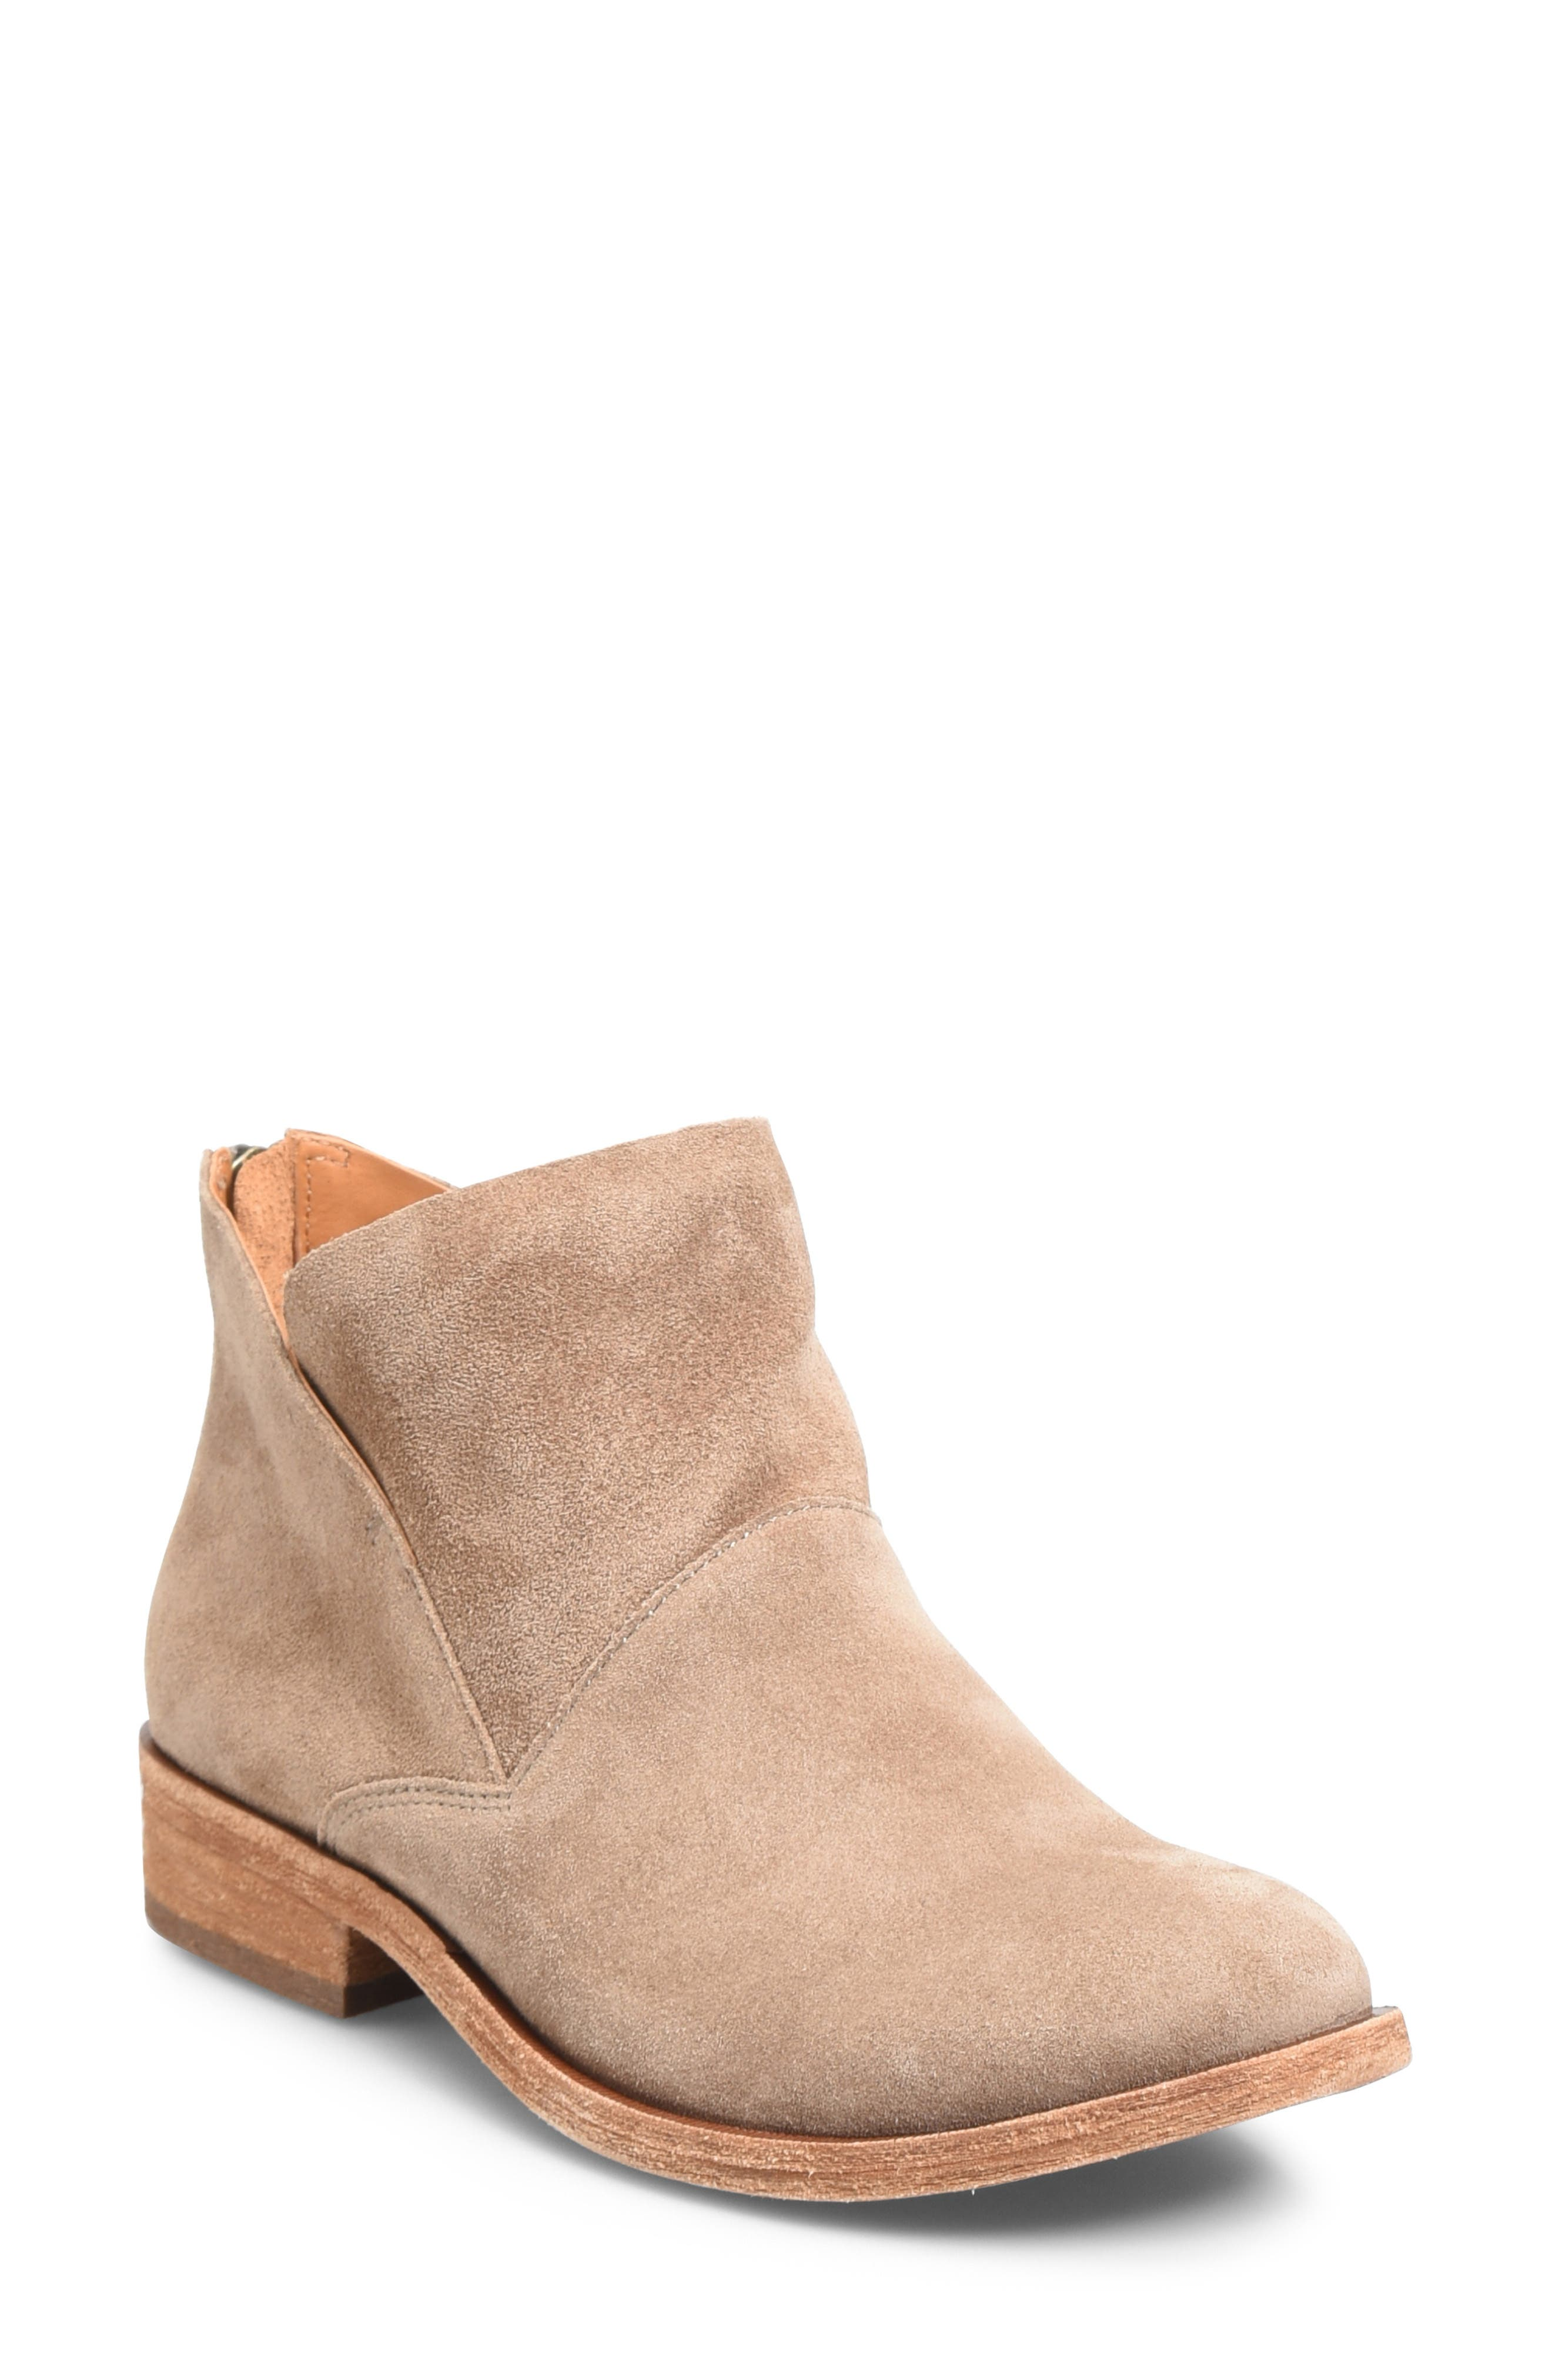 KORK-EASE<SUP>®</SUP> Ryder Ankle Boot, Main, color, TAUPE GREY SUEDE